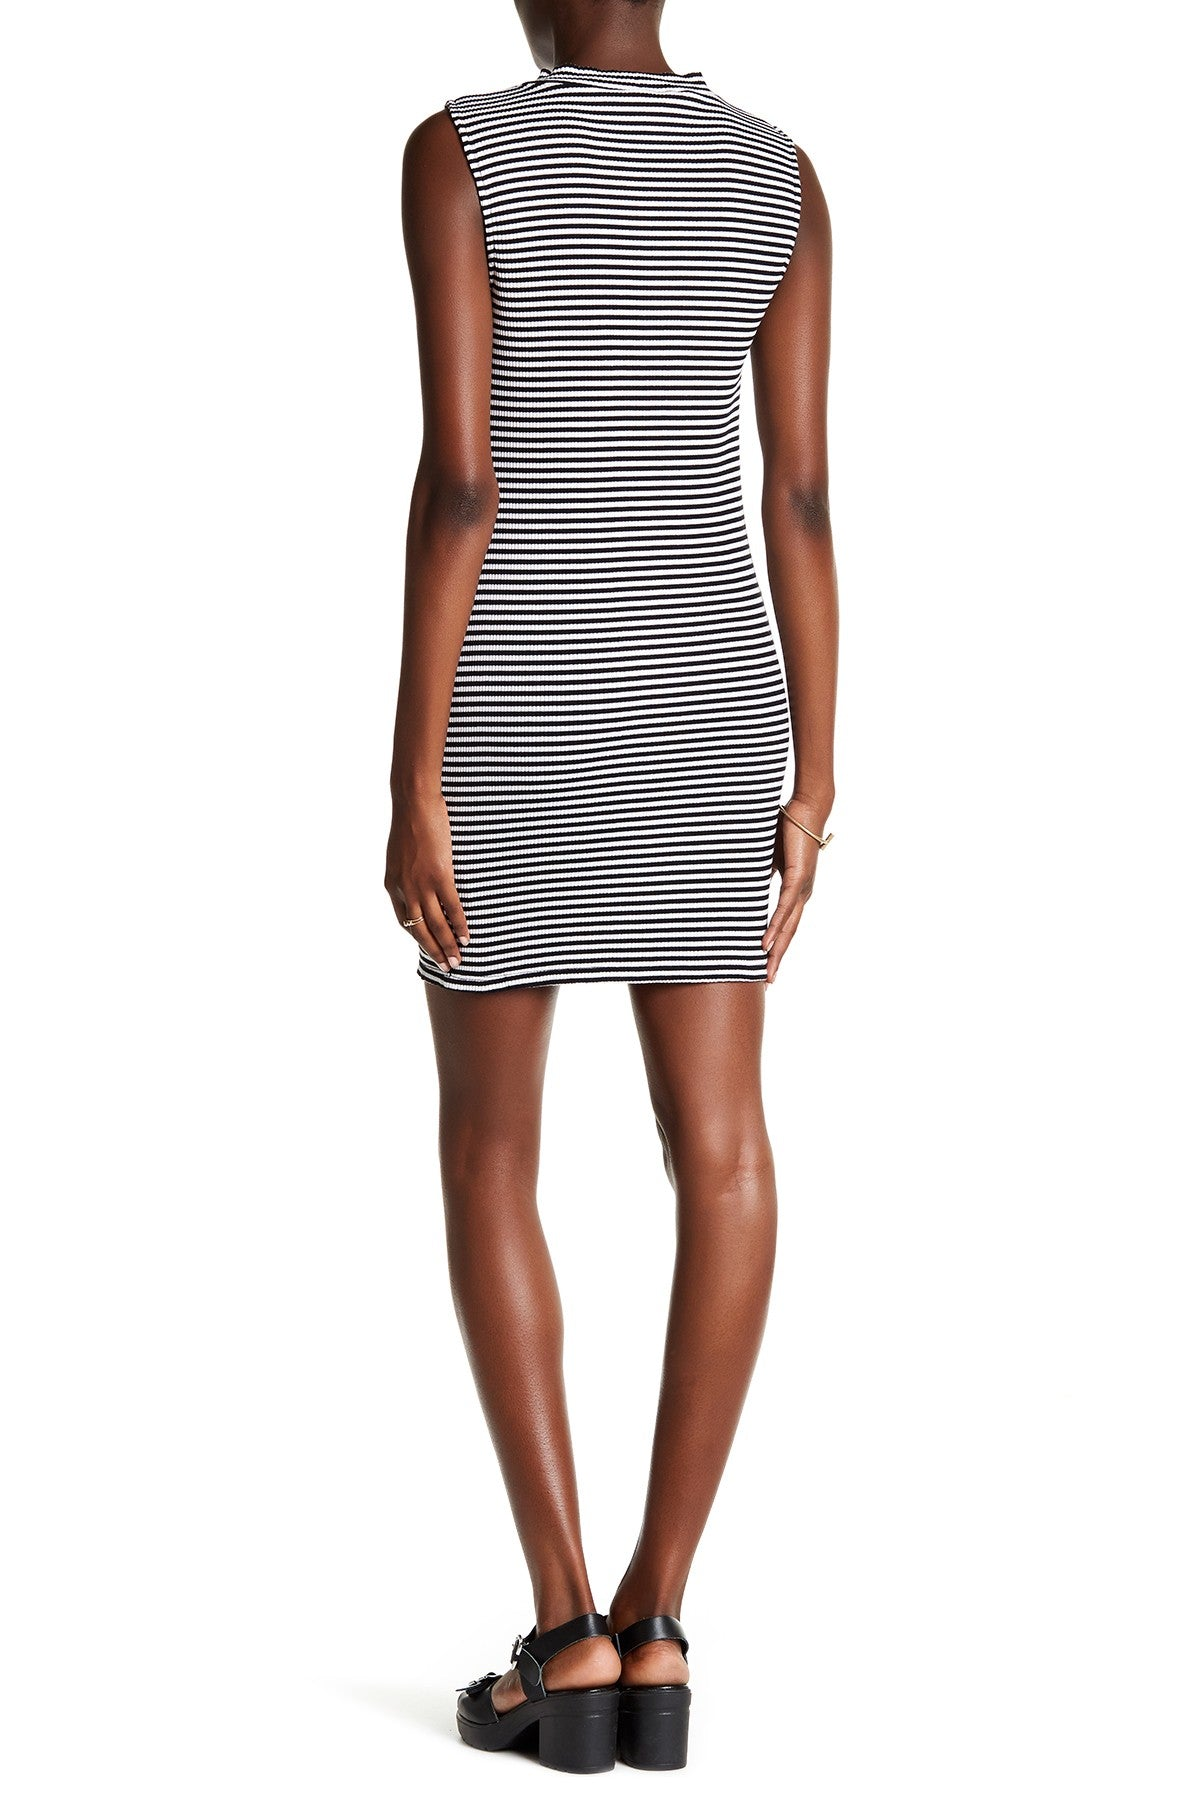 Kensie Women's Striped Ribbed Bodycon Dress